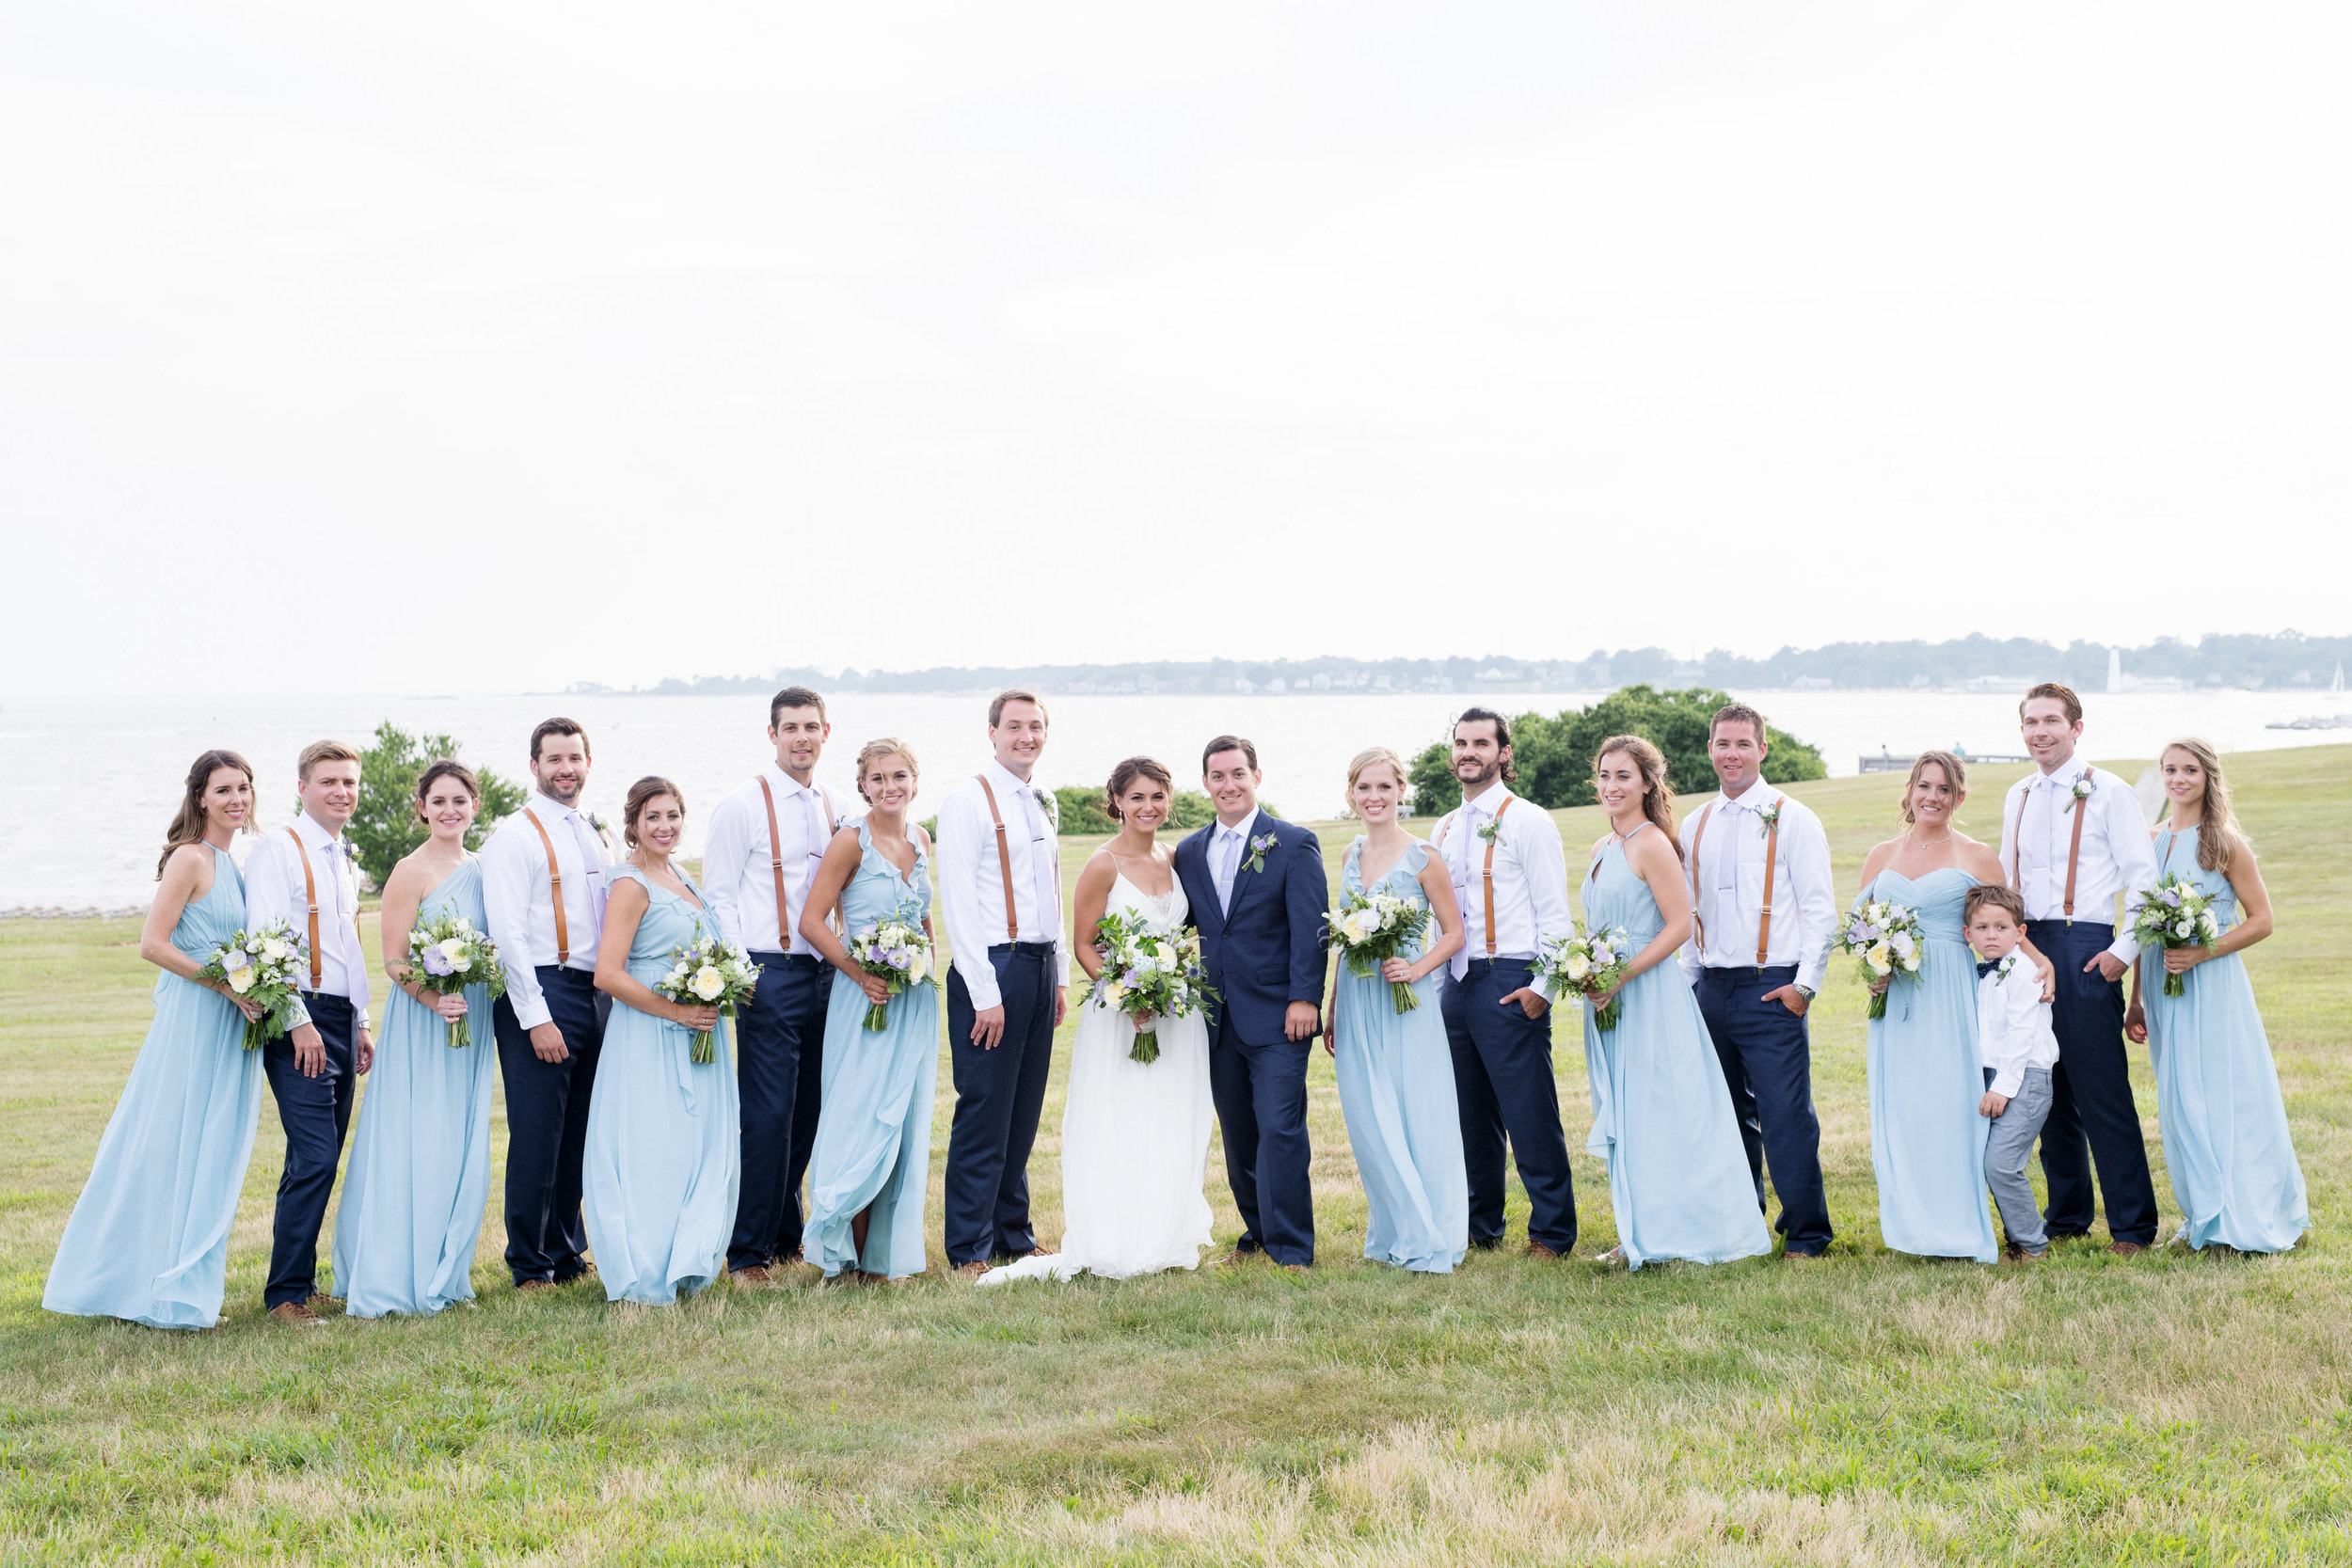 A Brandford House Connecticut Summer Wedding - The Overwhelmed Bride Wedding Ideas Inspiration Blog